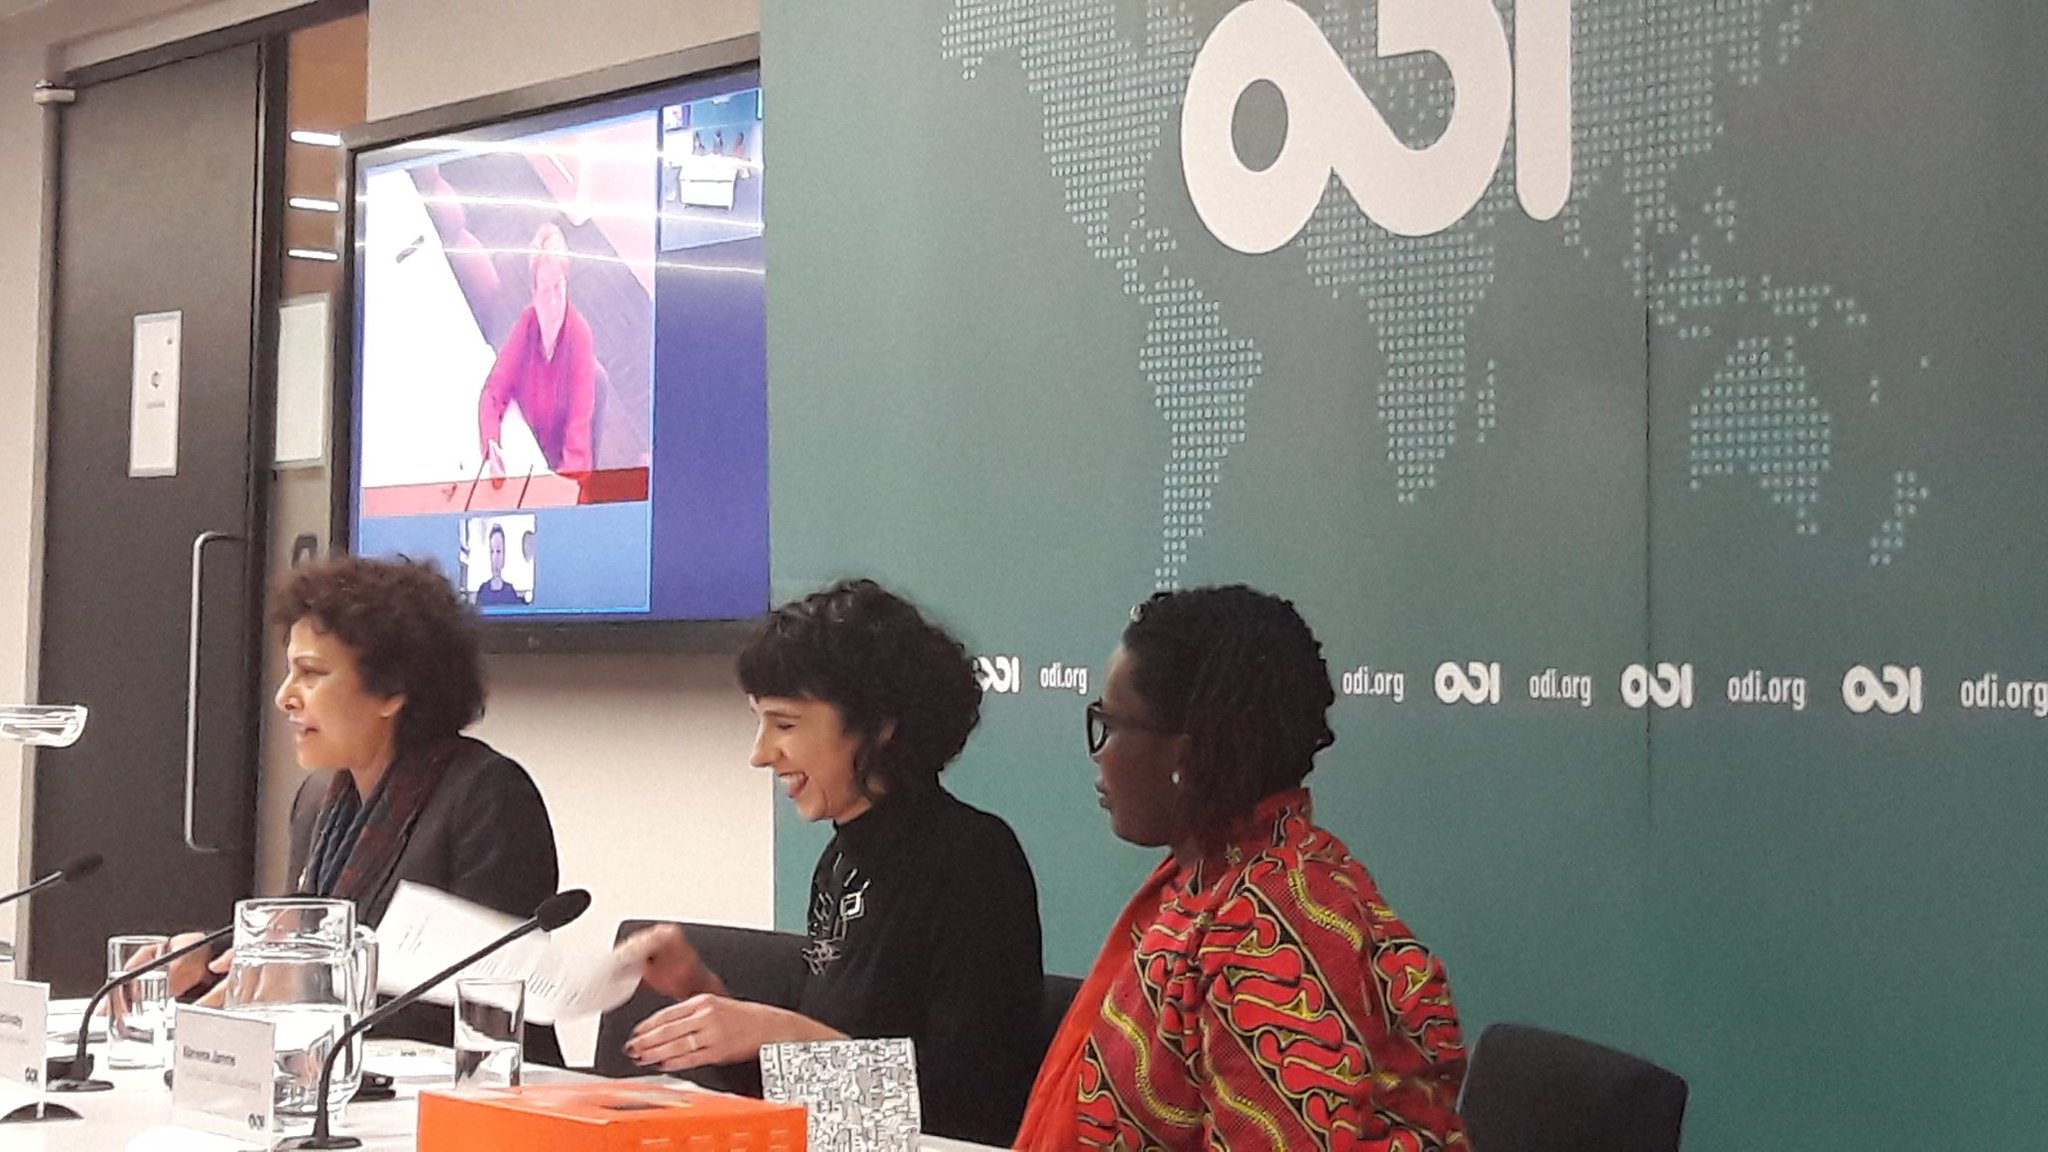 Inspiring panel on fighting the current backlash against women! #IWD2017 thanks @odidev https://t.co/ufoI8JlHP8